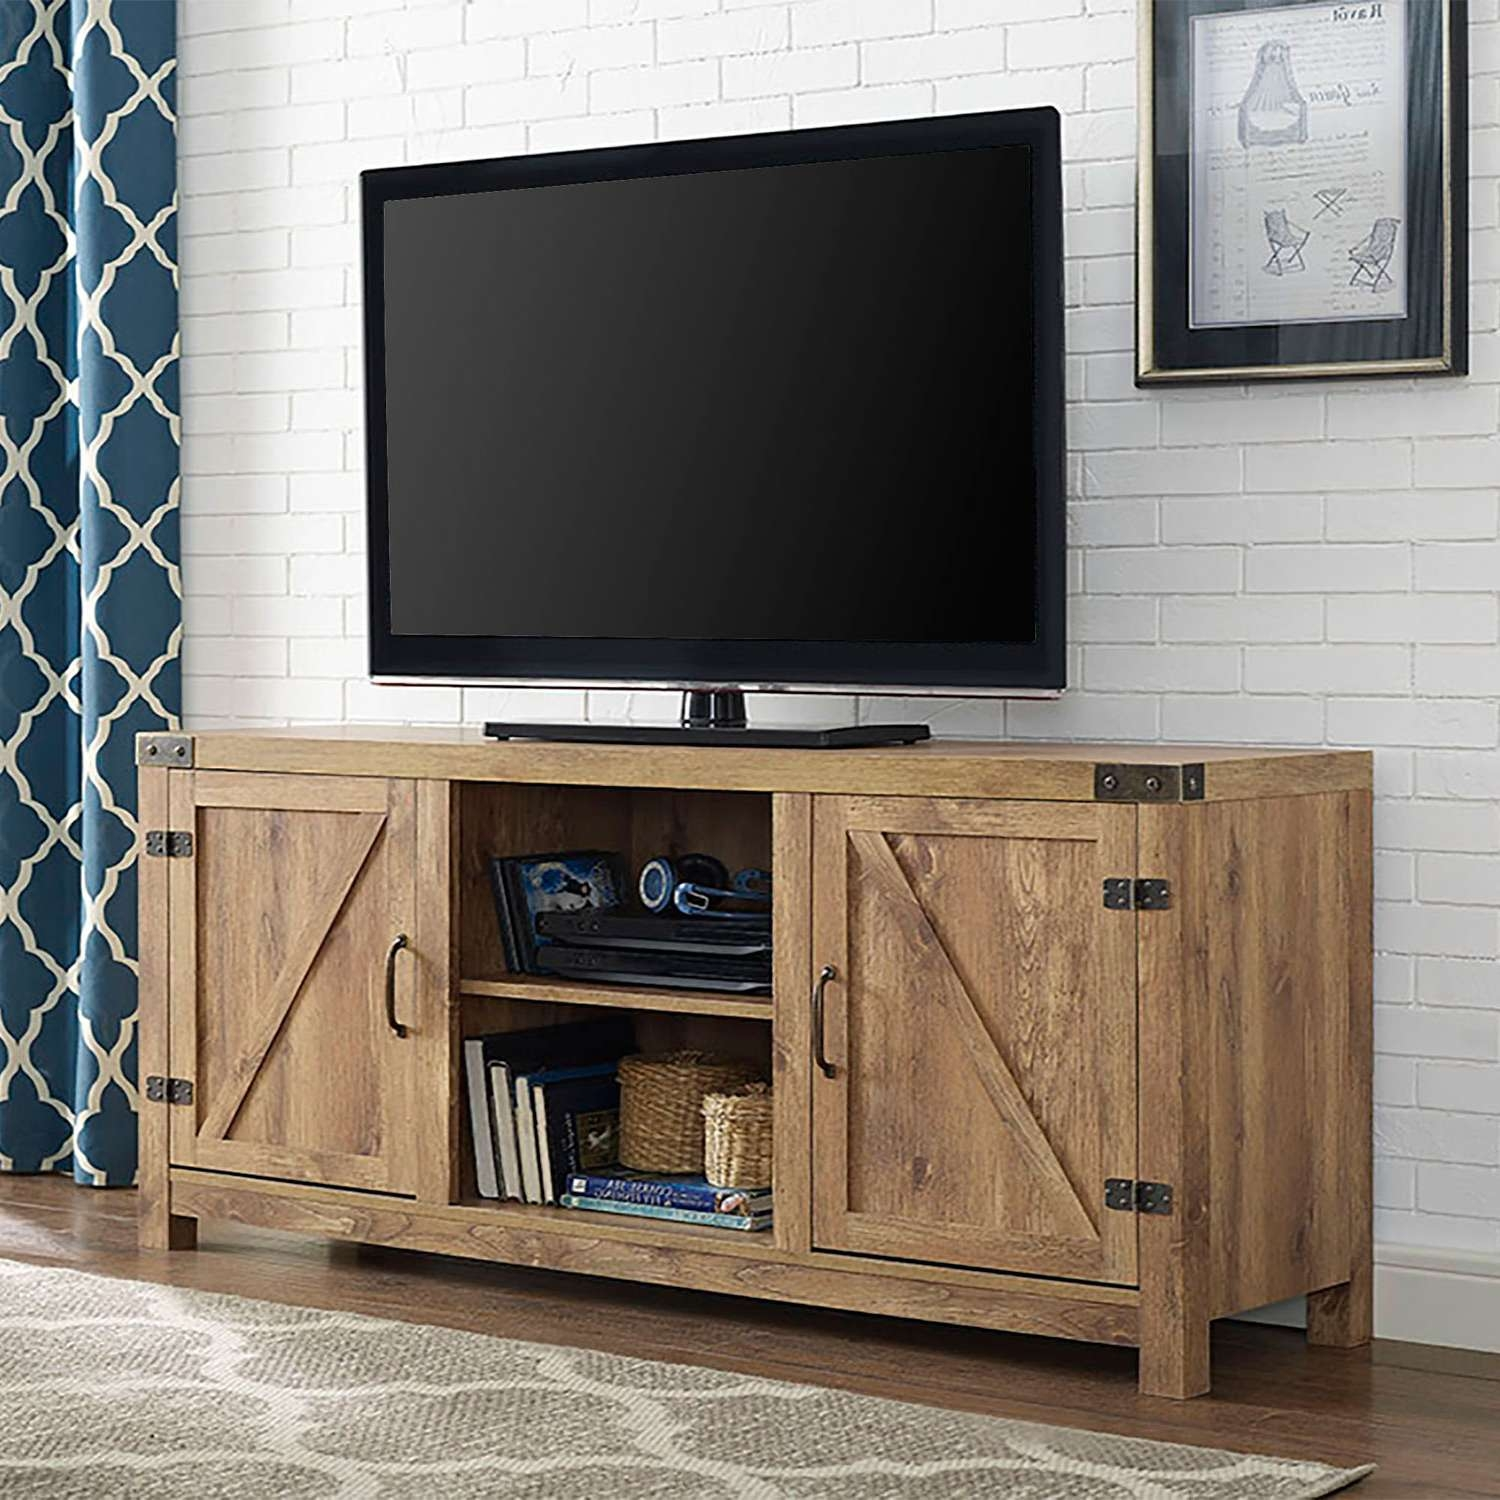 Tv Stands & Cabinets On Sale | Bellacor Within Sleek Tv Stands (View 12 of 15)